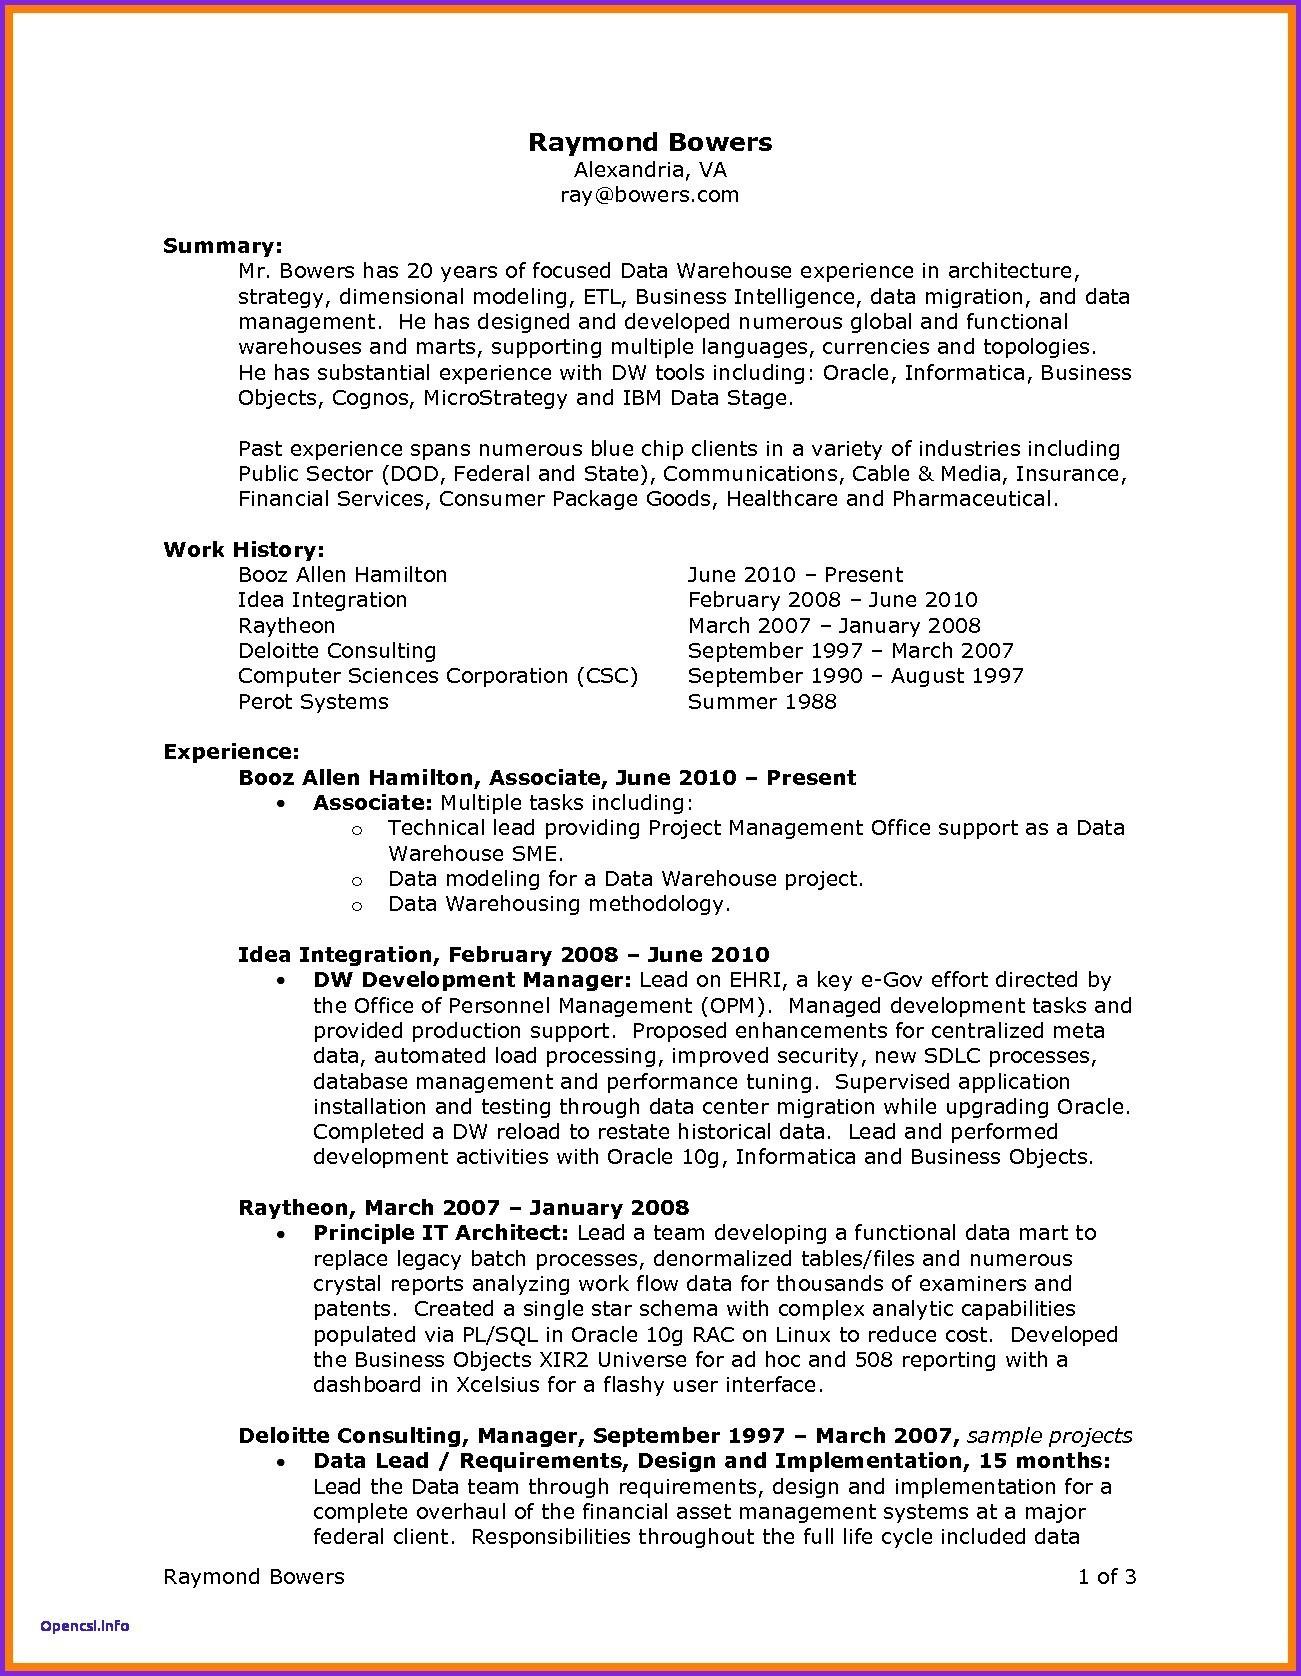 Functional Executive Resume - How to Word A Resume New Cv Resume format Valid Elegant Resume Cv